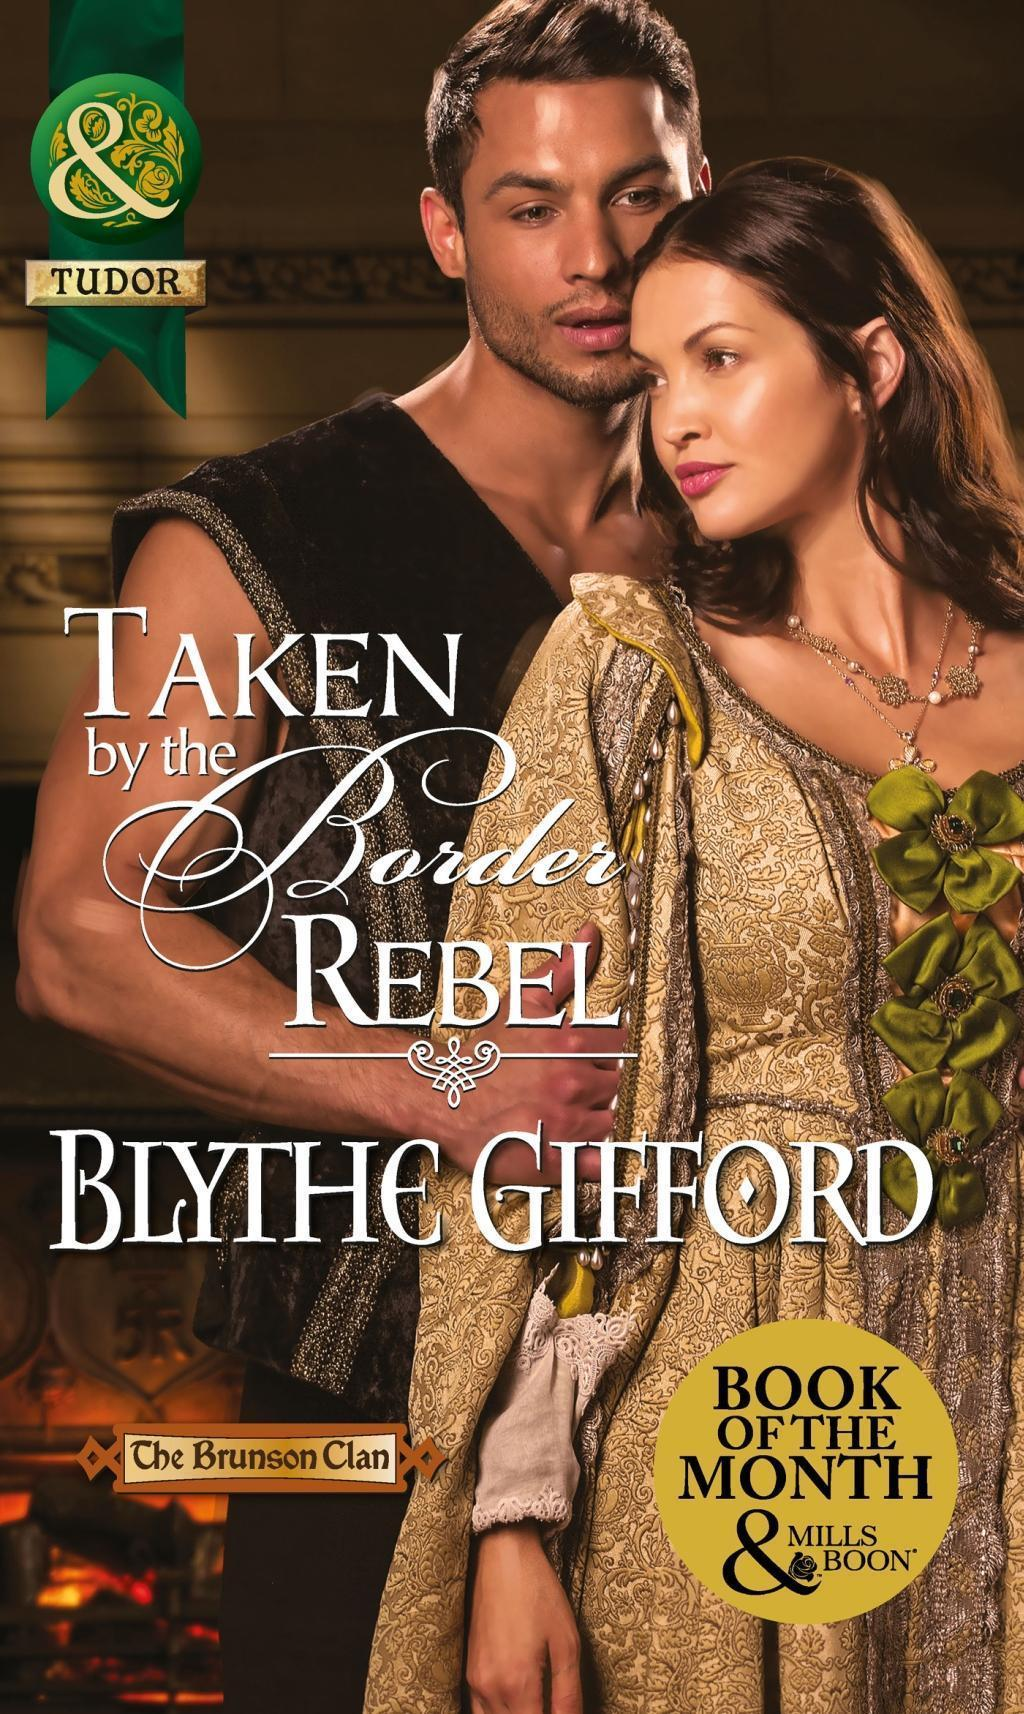 Taken by the Border Rebel (Mills & Boon Historical) (The Brunson Clan, Book 3)